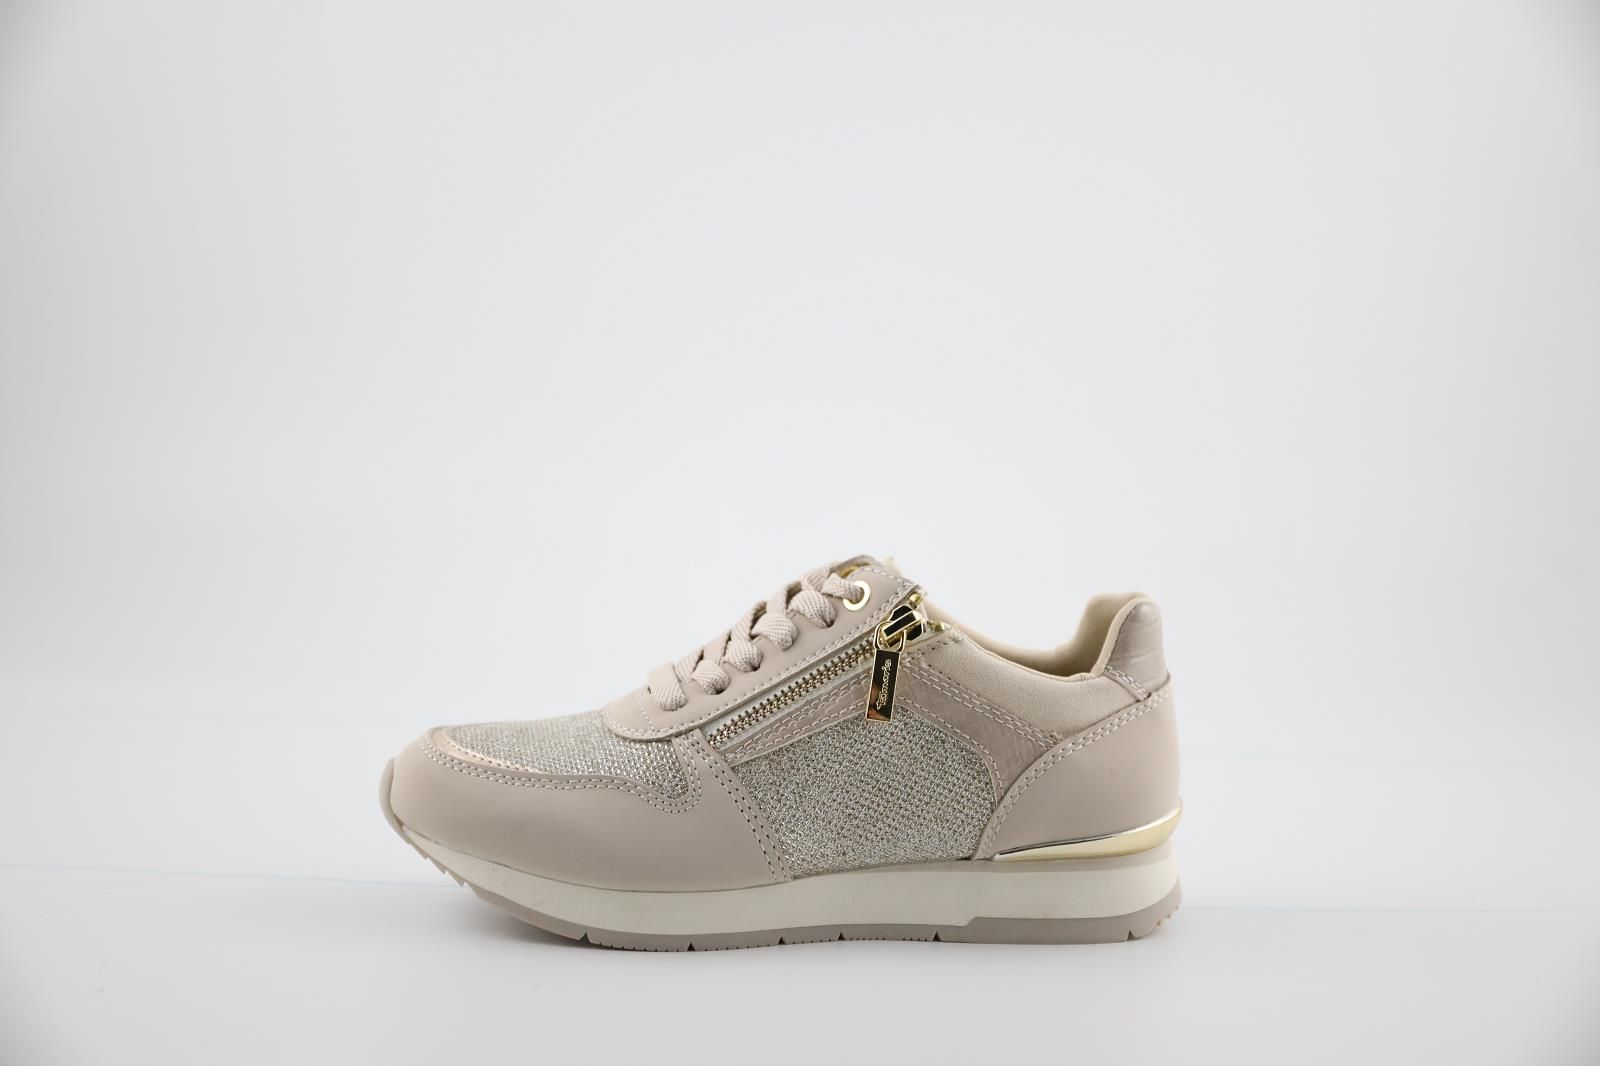 Tamaris Sneackers Beige dames (Phycy - 23603-26) - Marques à Suivre